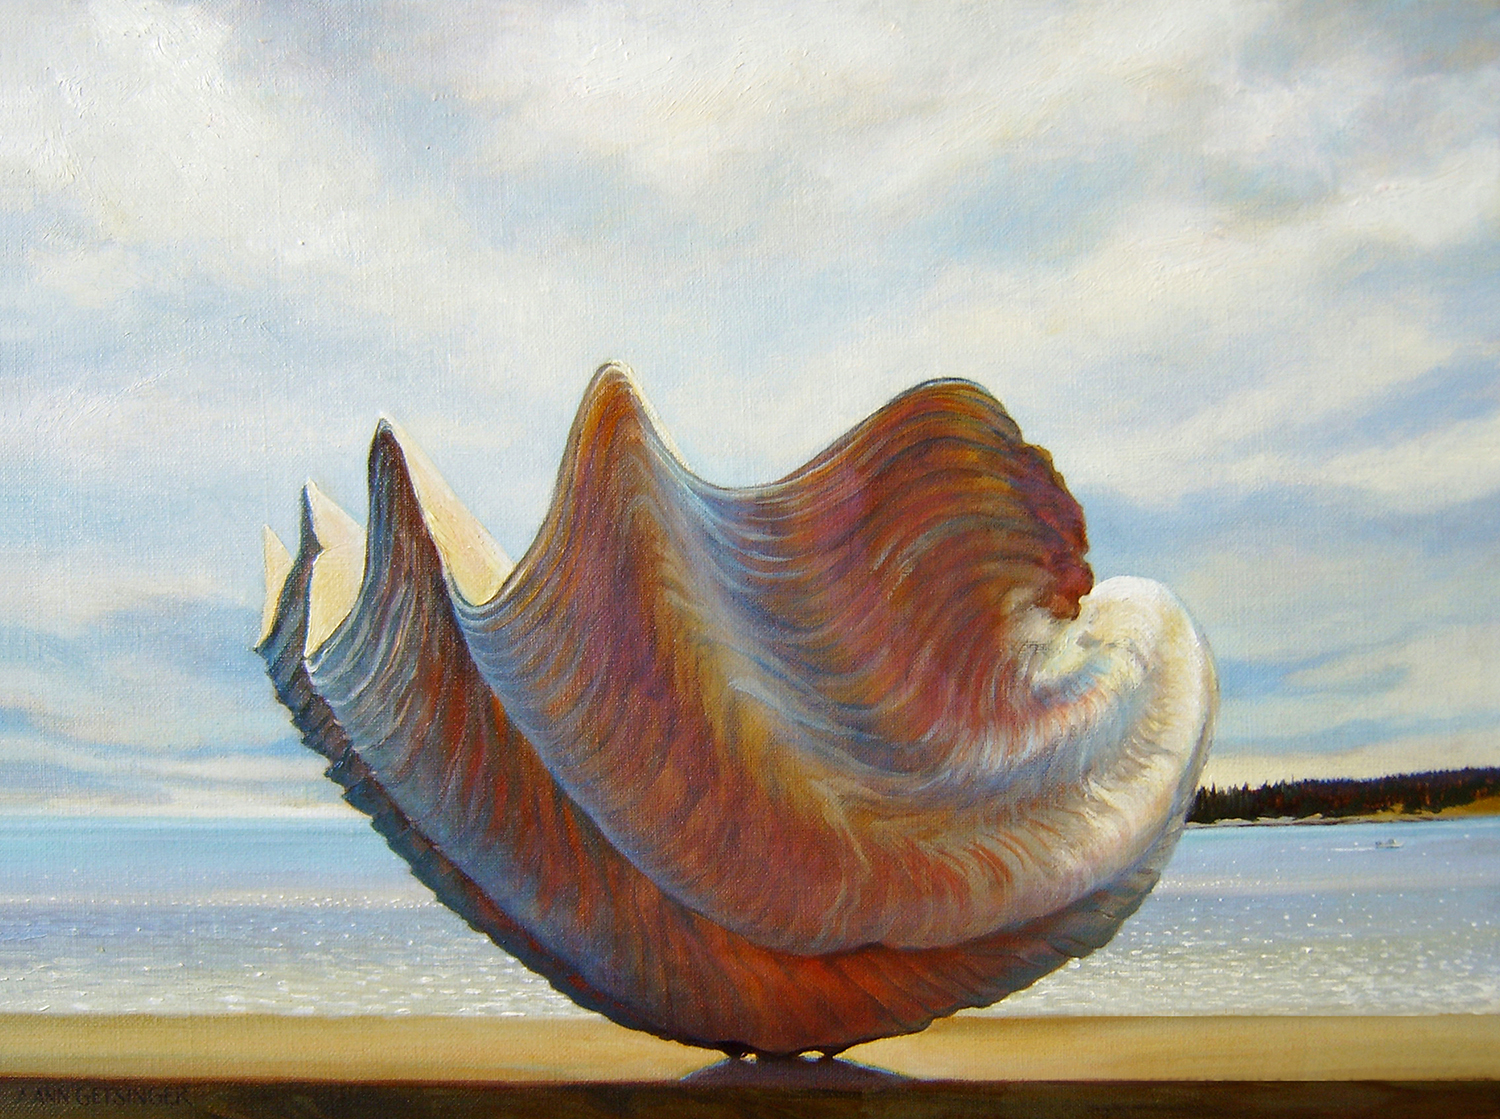 "Giant Clam, Ocean 18"" x 24"" 2006, oil on linen"